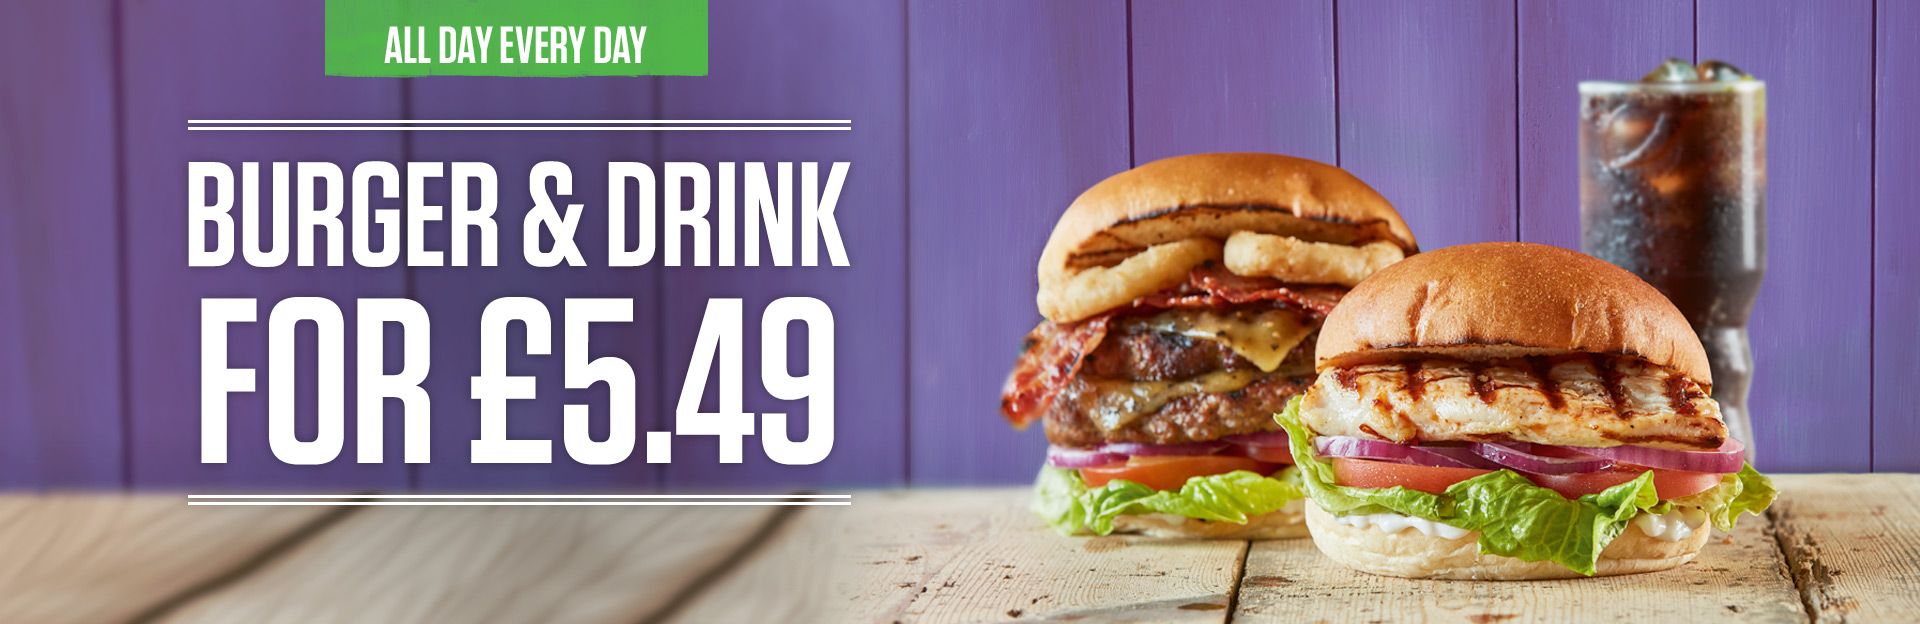 Burger and Drink Deal at The Vine